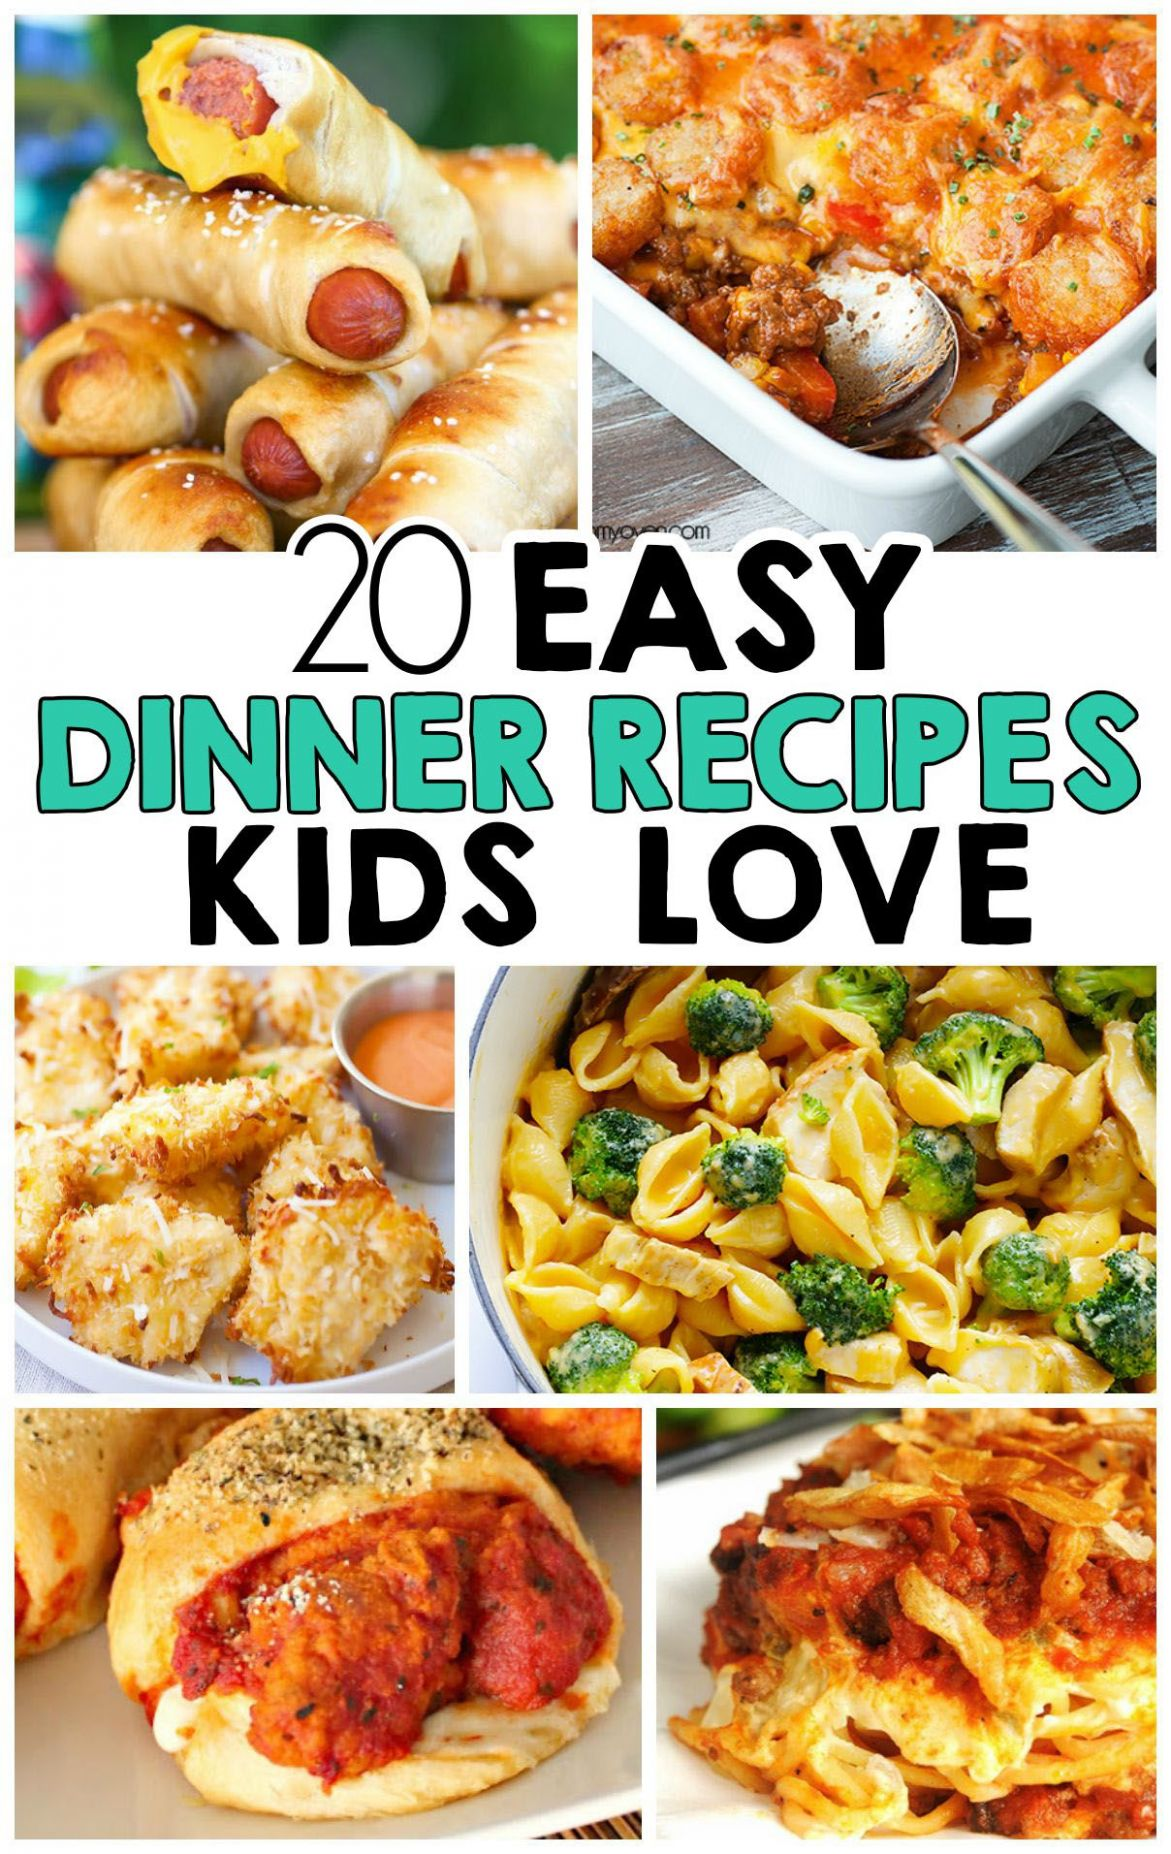 9 Easy Dinner Recipes That Kids Love | Meals kids love, Easy ...